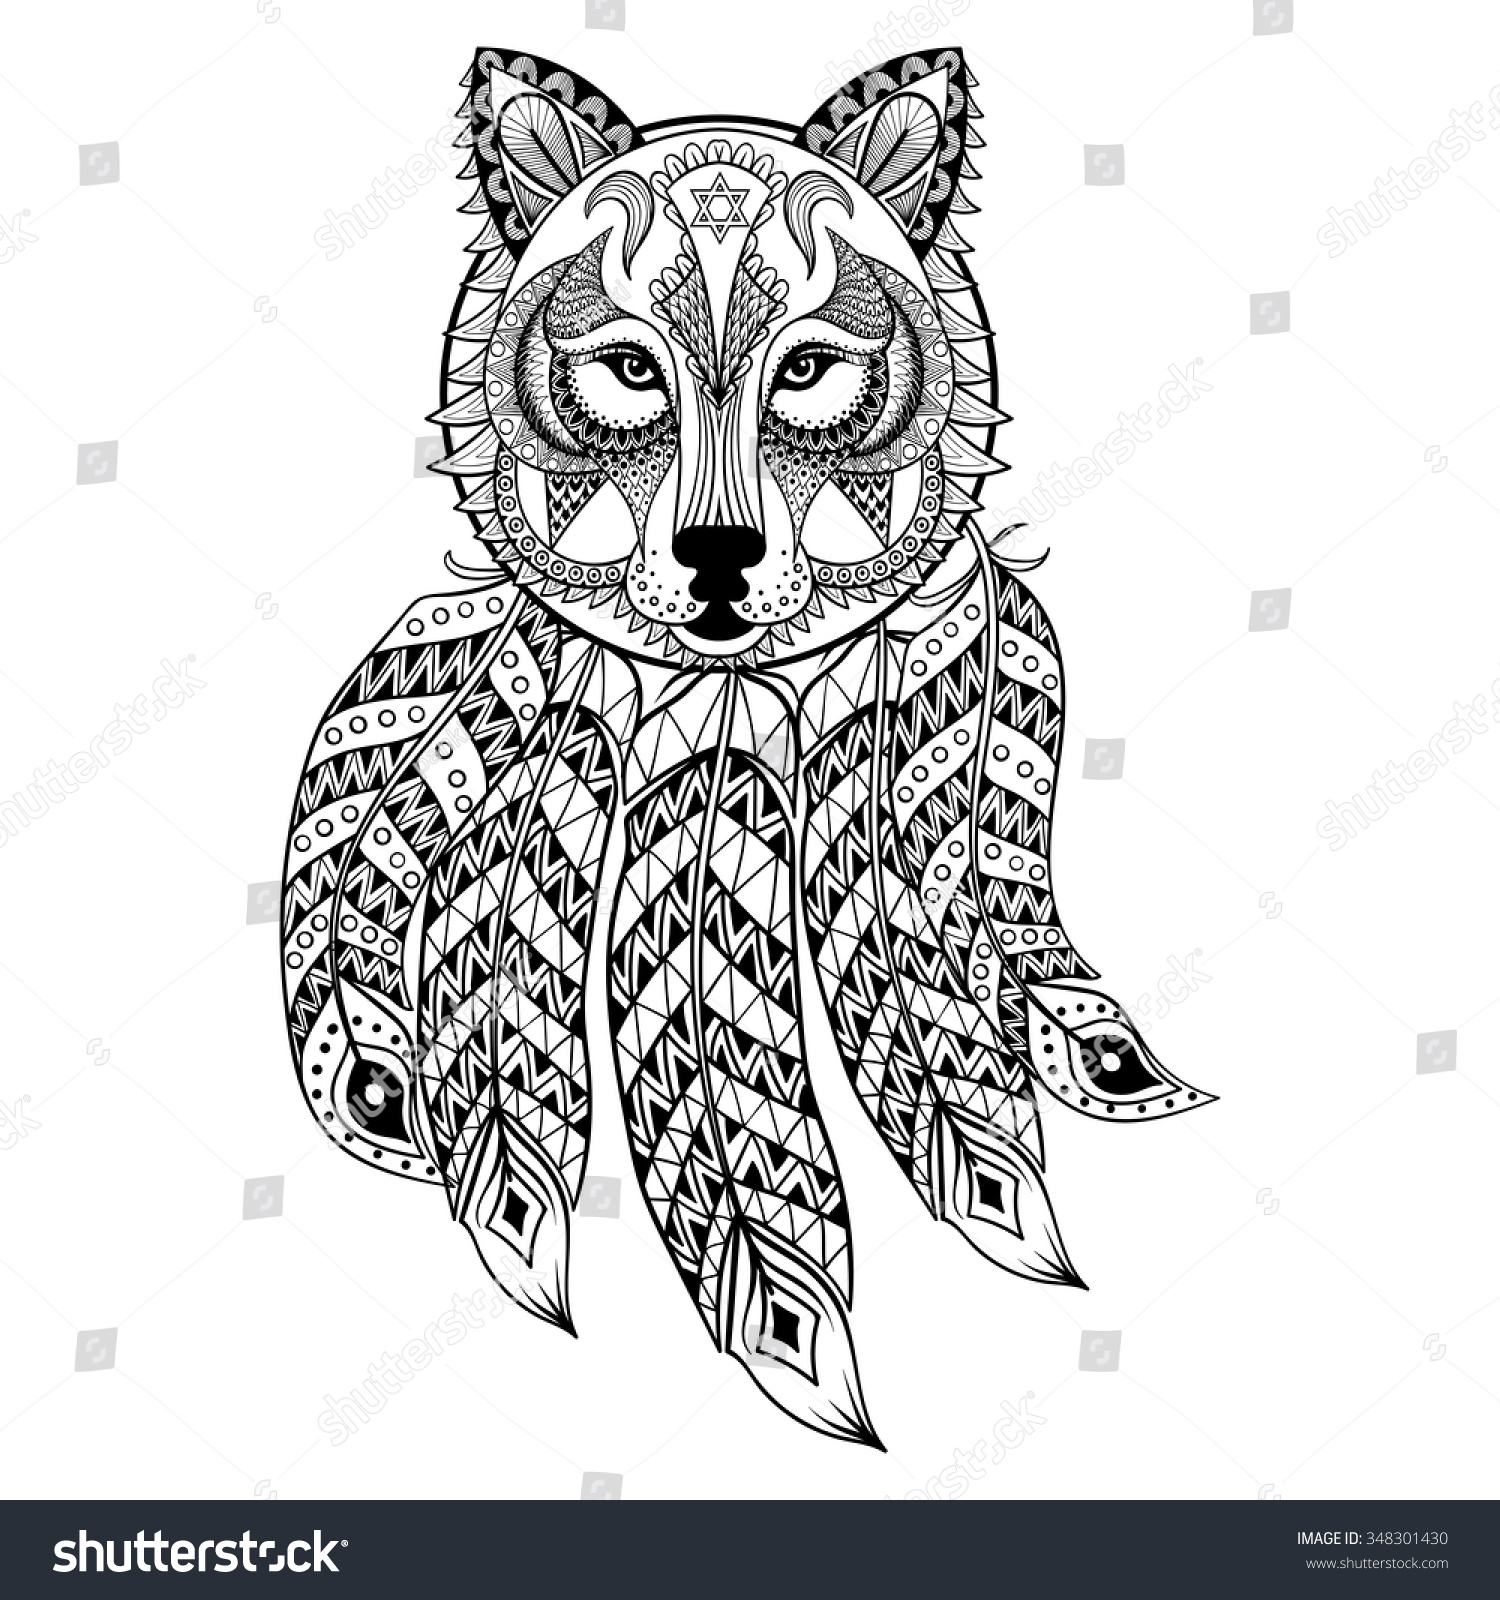 Coloring pages dream catchers - Vector Ornamental Wolf With Dreamcatcher Ethnic Zentangled Mascot Amulet Mask Of Werewolf